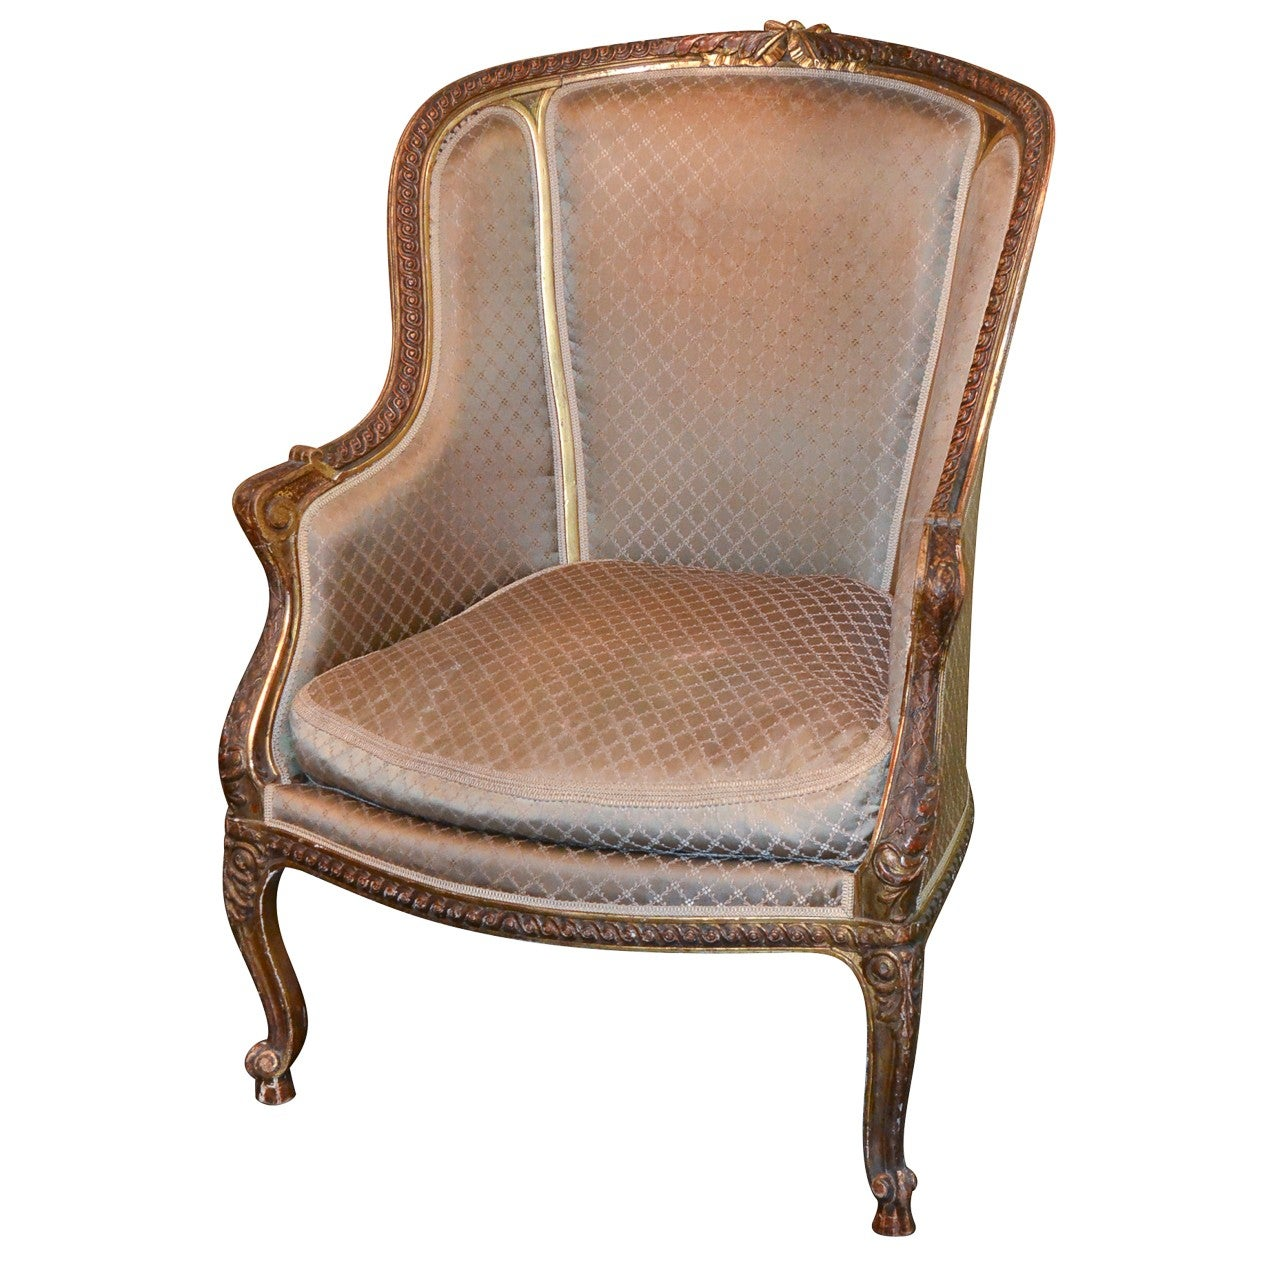 19th Century French Louis XV Bergere